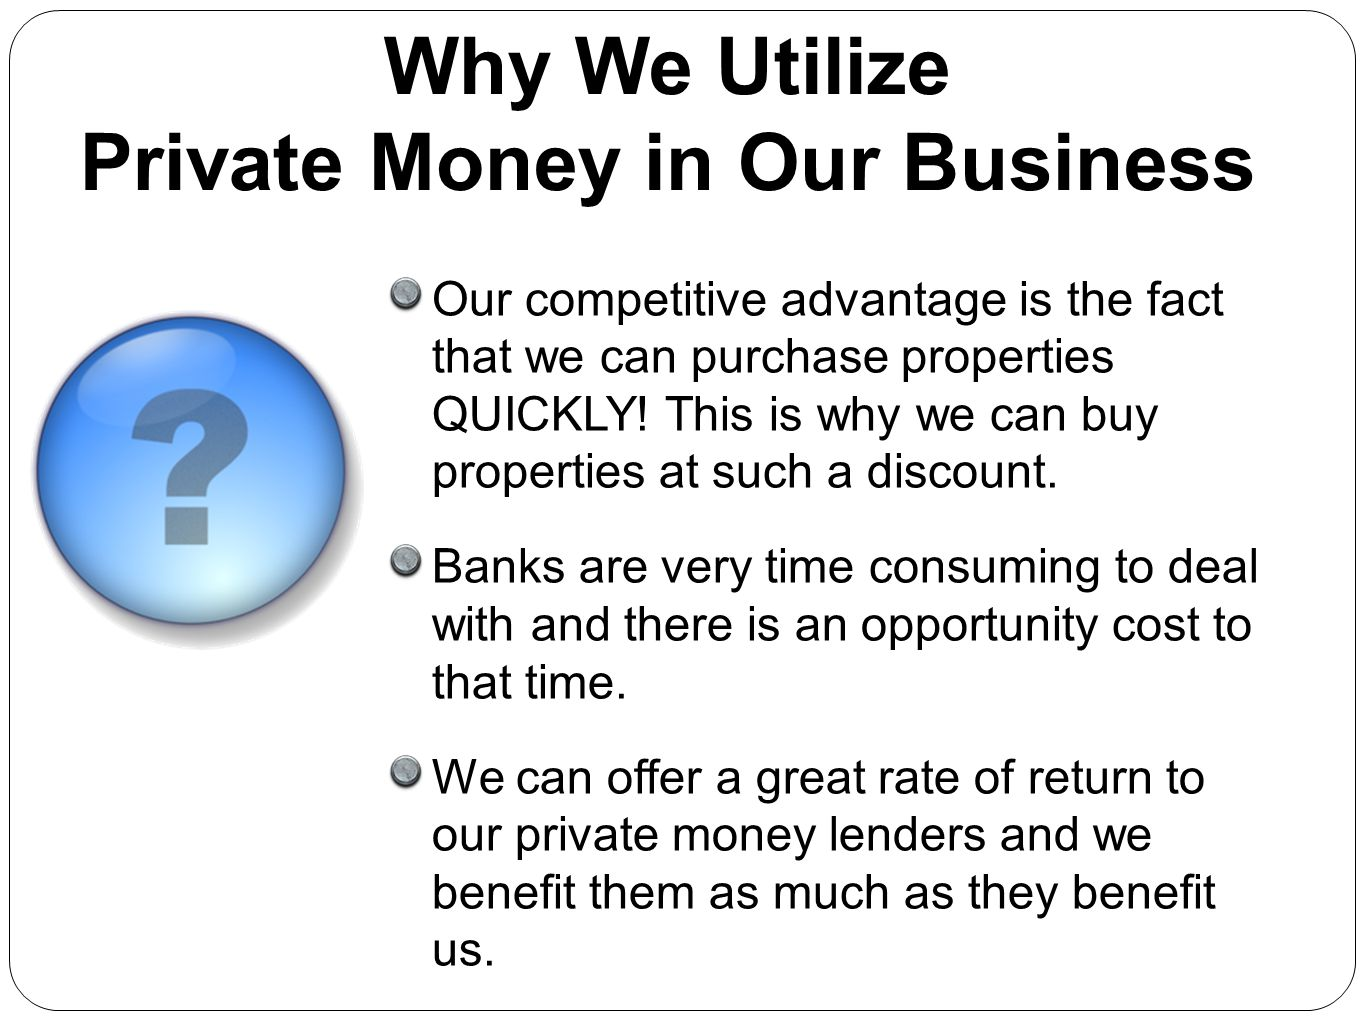 Private Money in Our Business